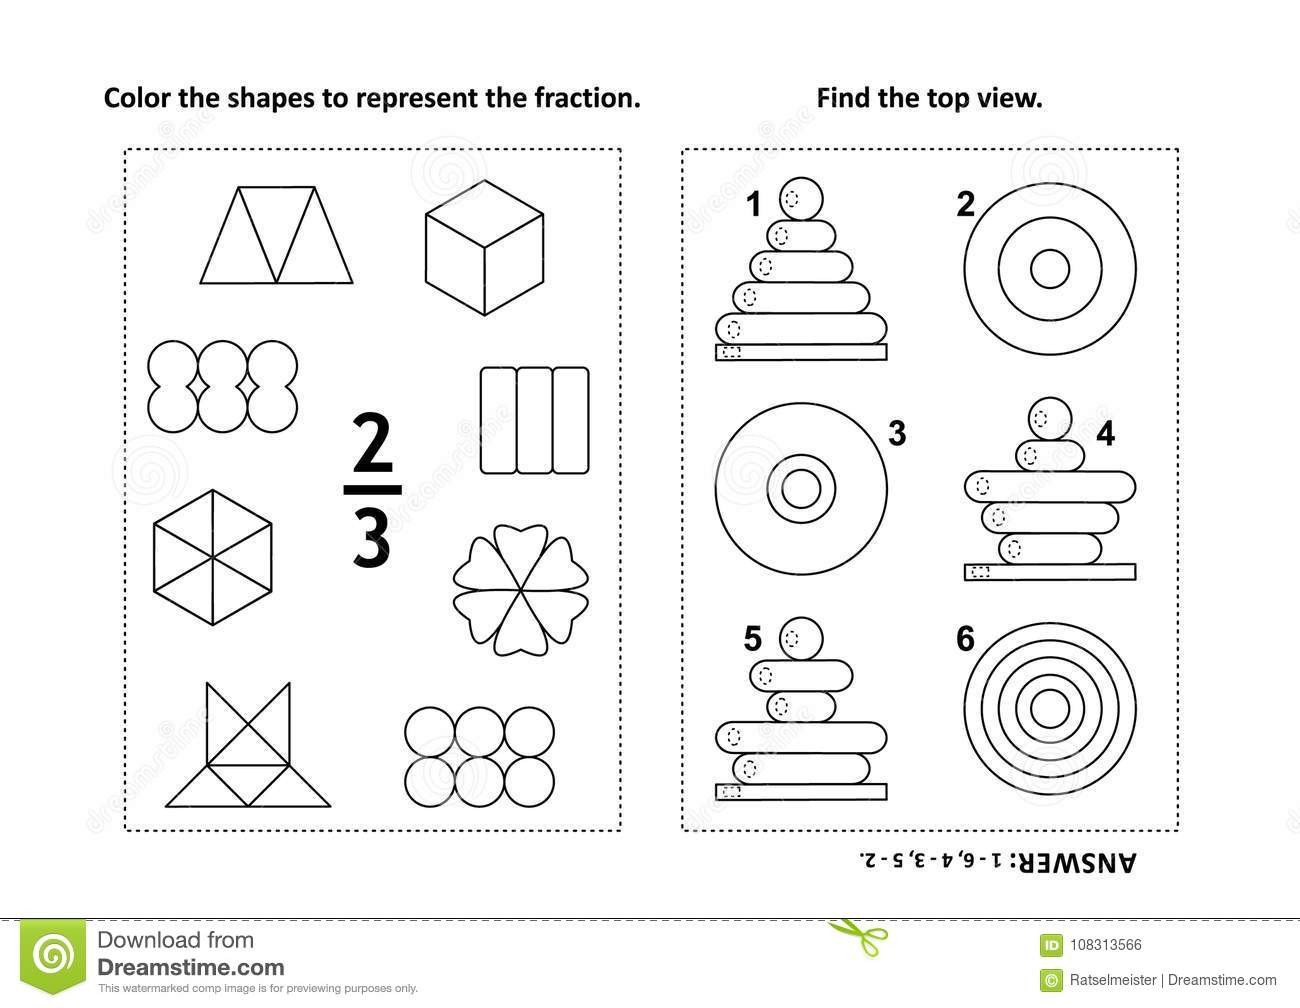 two visual math puzzles coloring pages color shapes to represent fraction find top view black white answers included